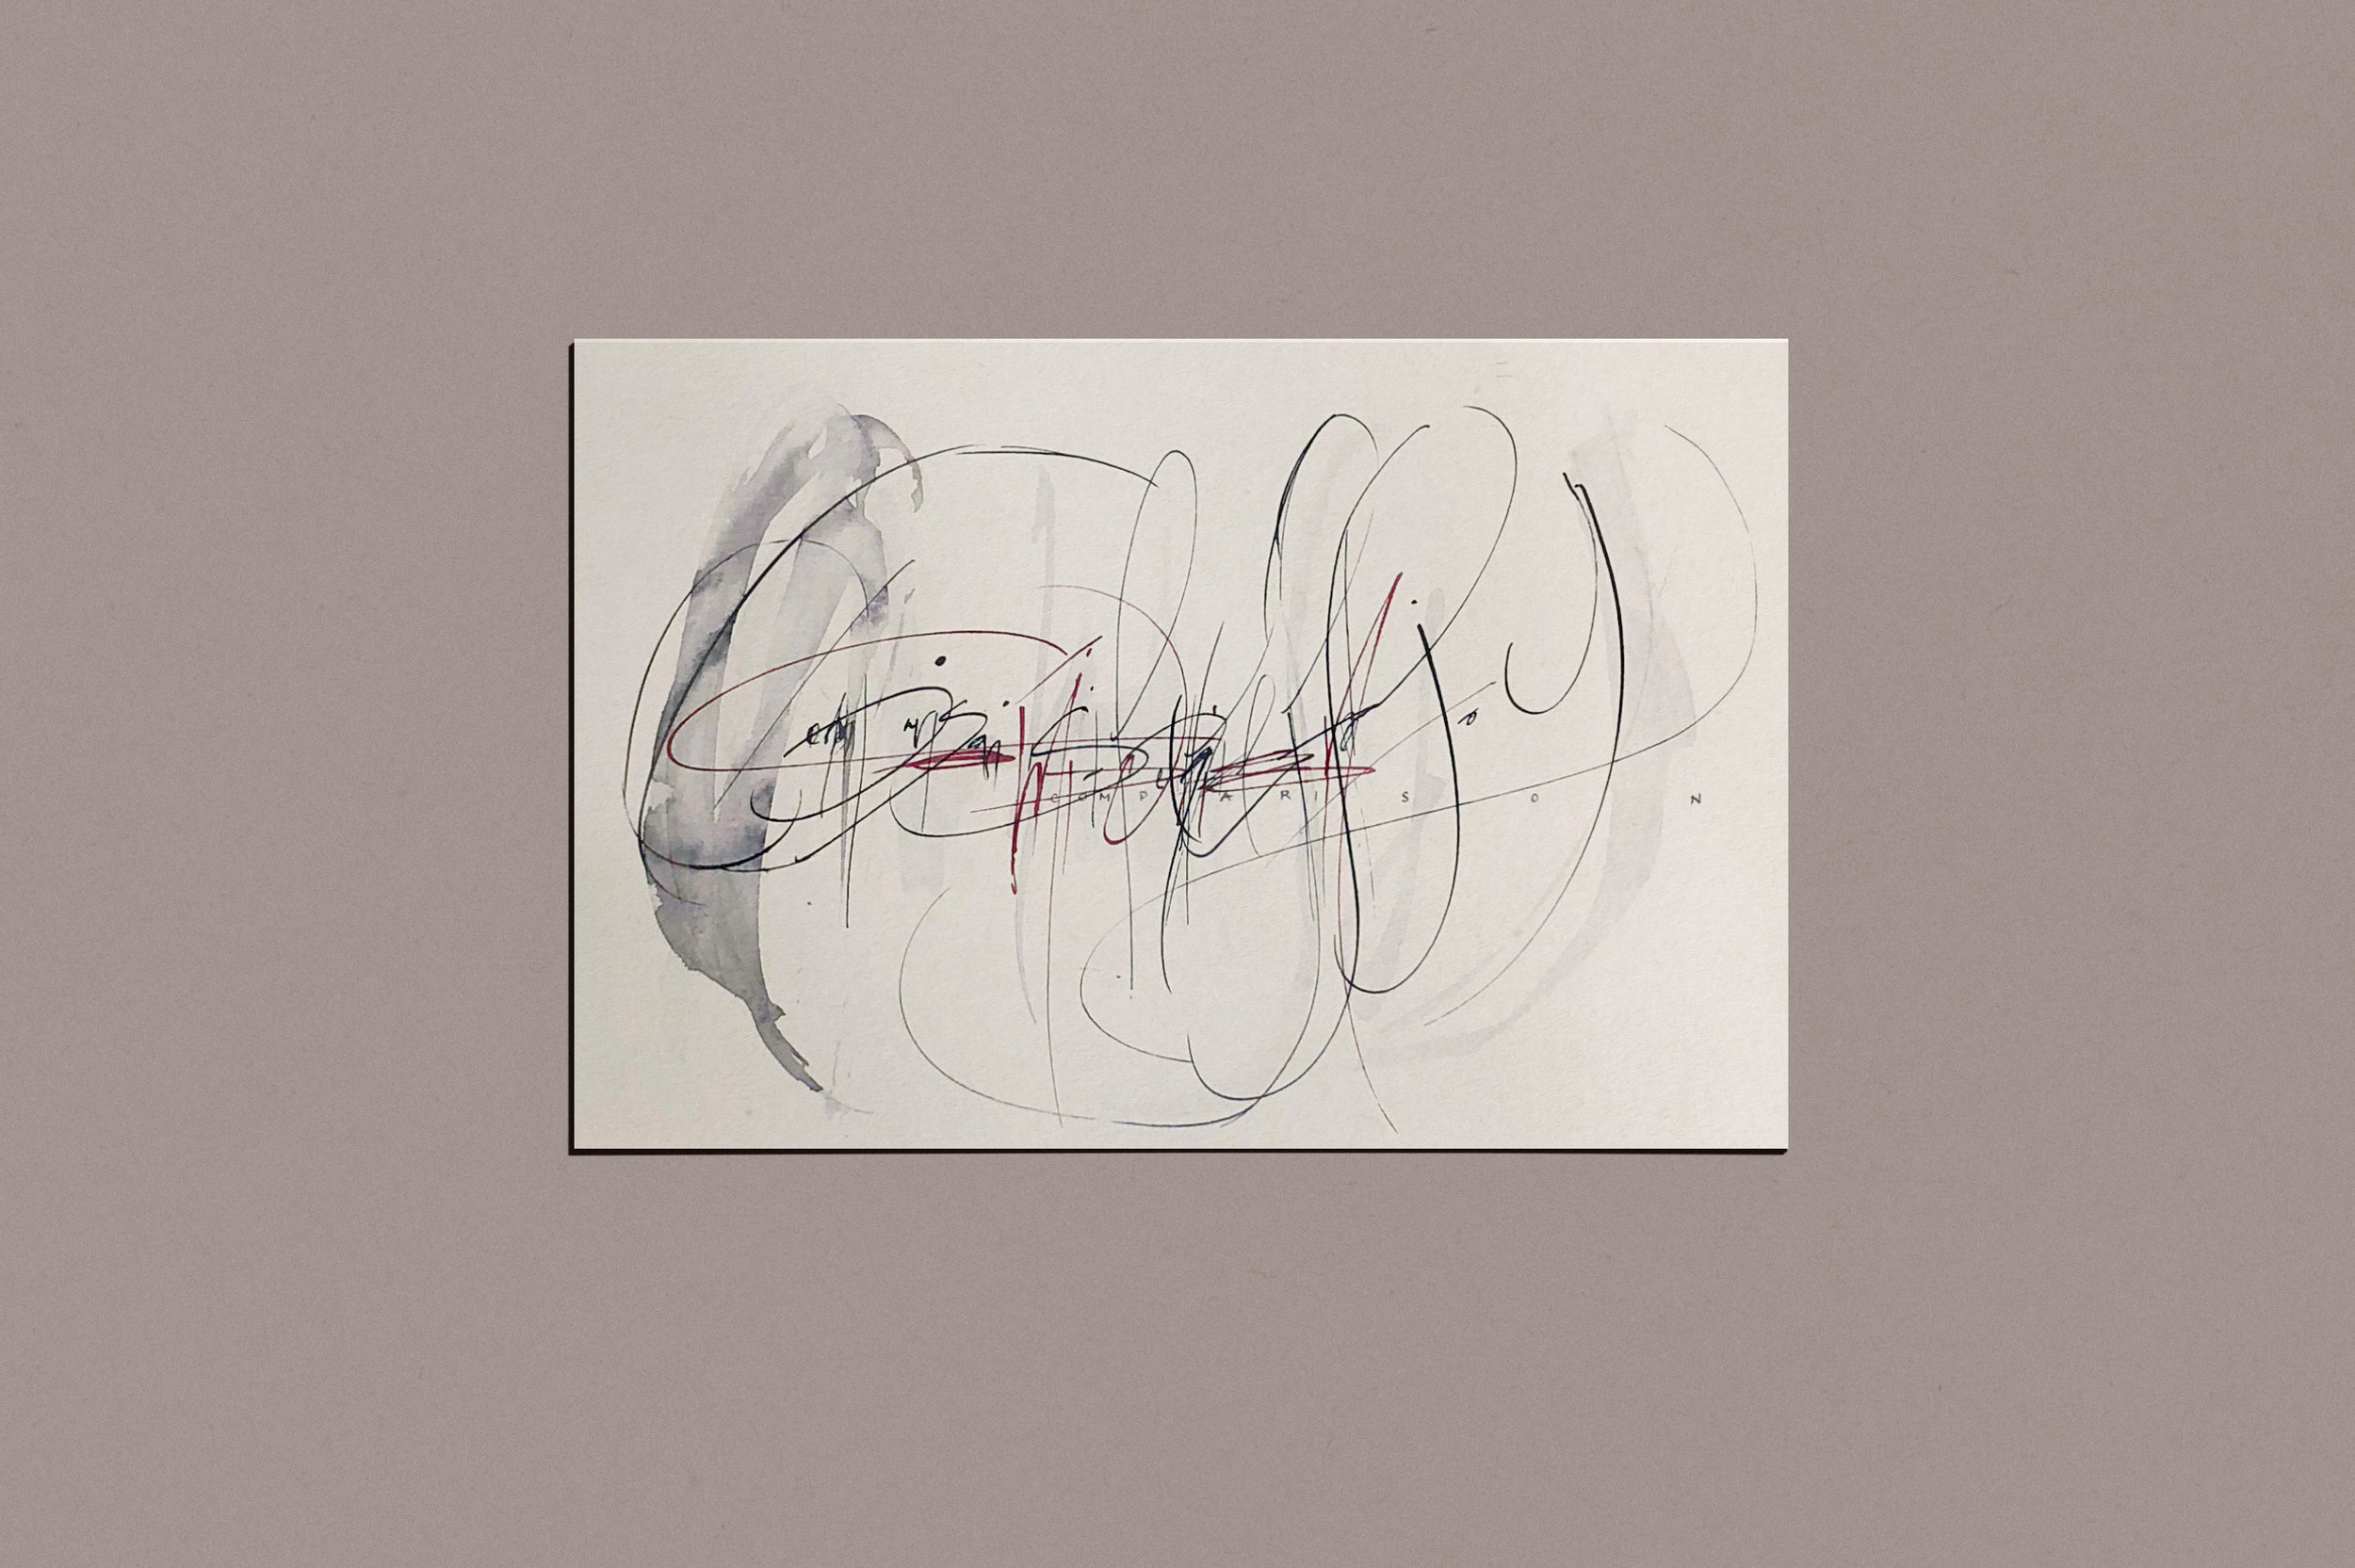 Gestural Calligraphy | by Chavelli www.chavelli.com